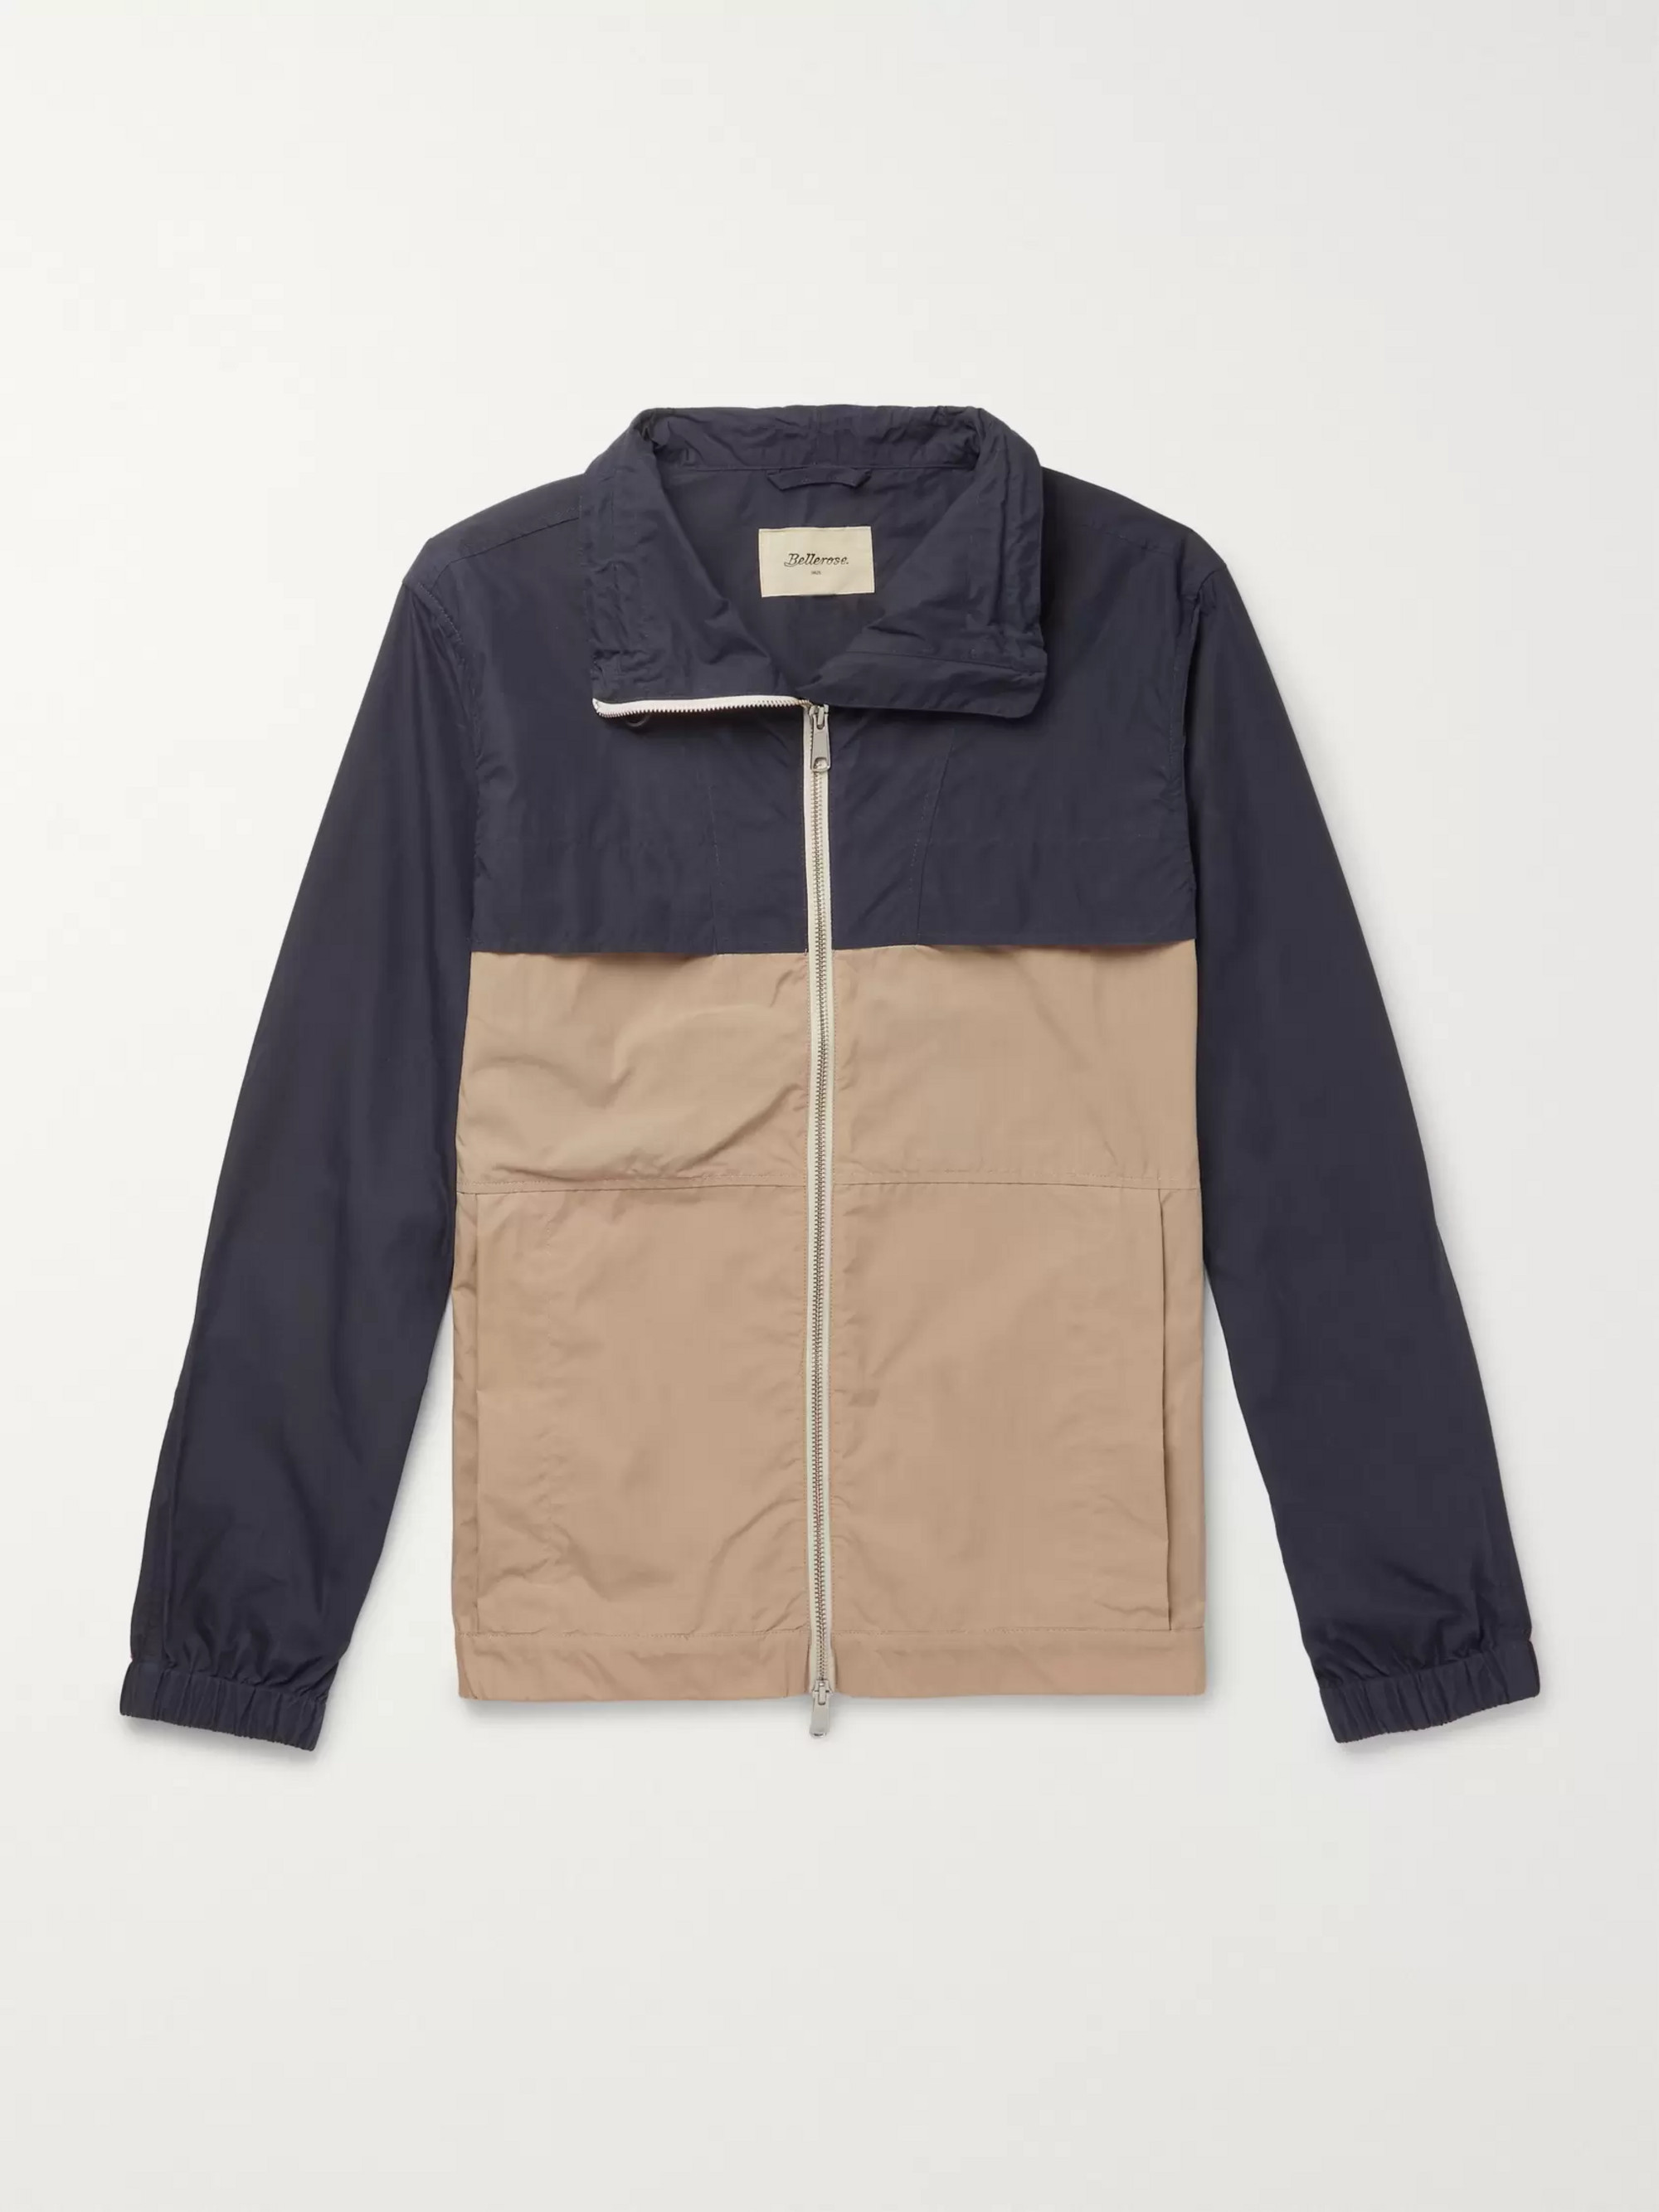 Bellerose Two-Tone Cotton-Blend Jacket